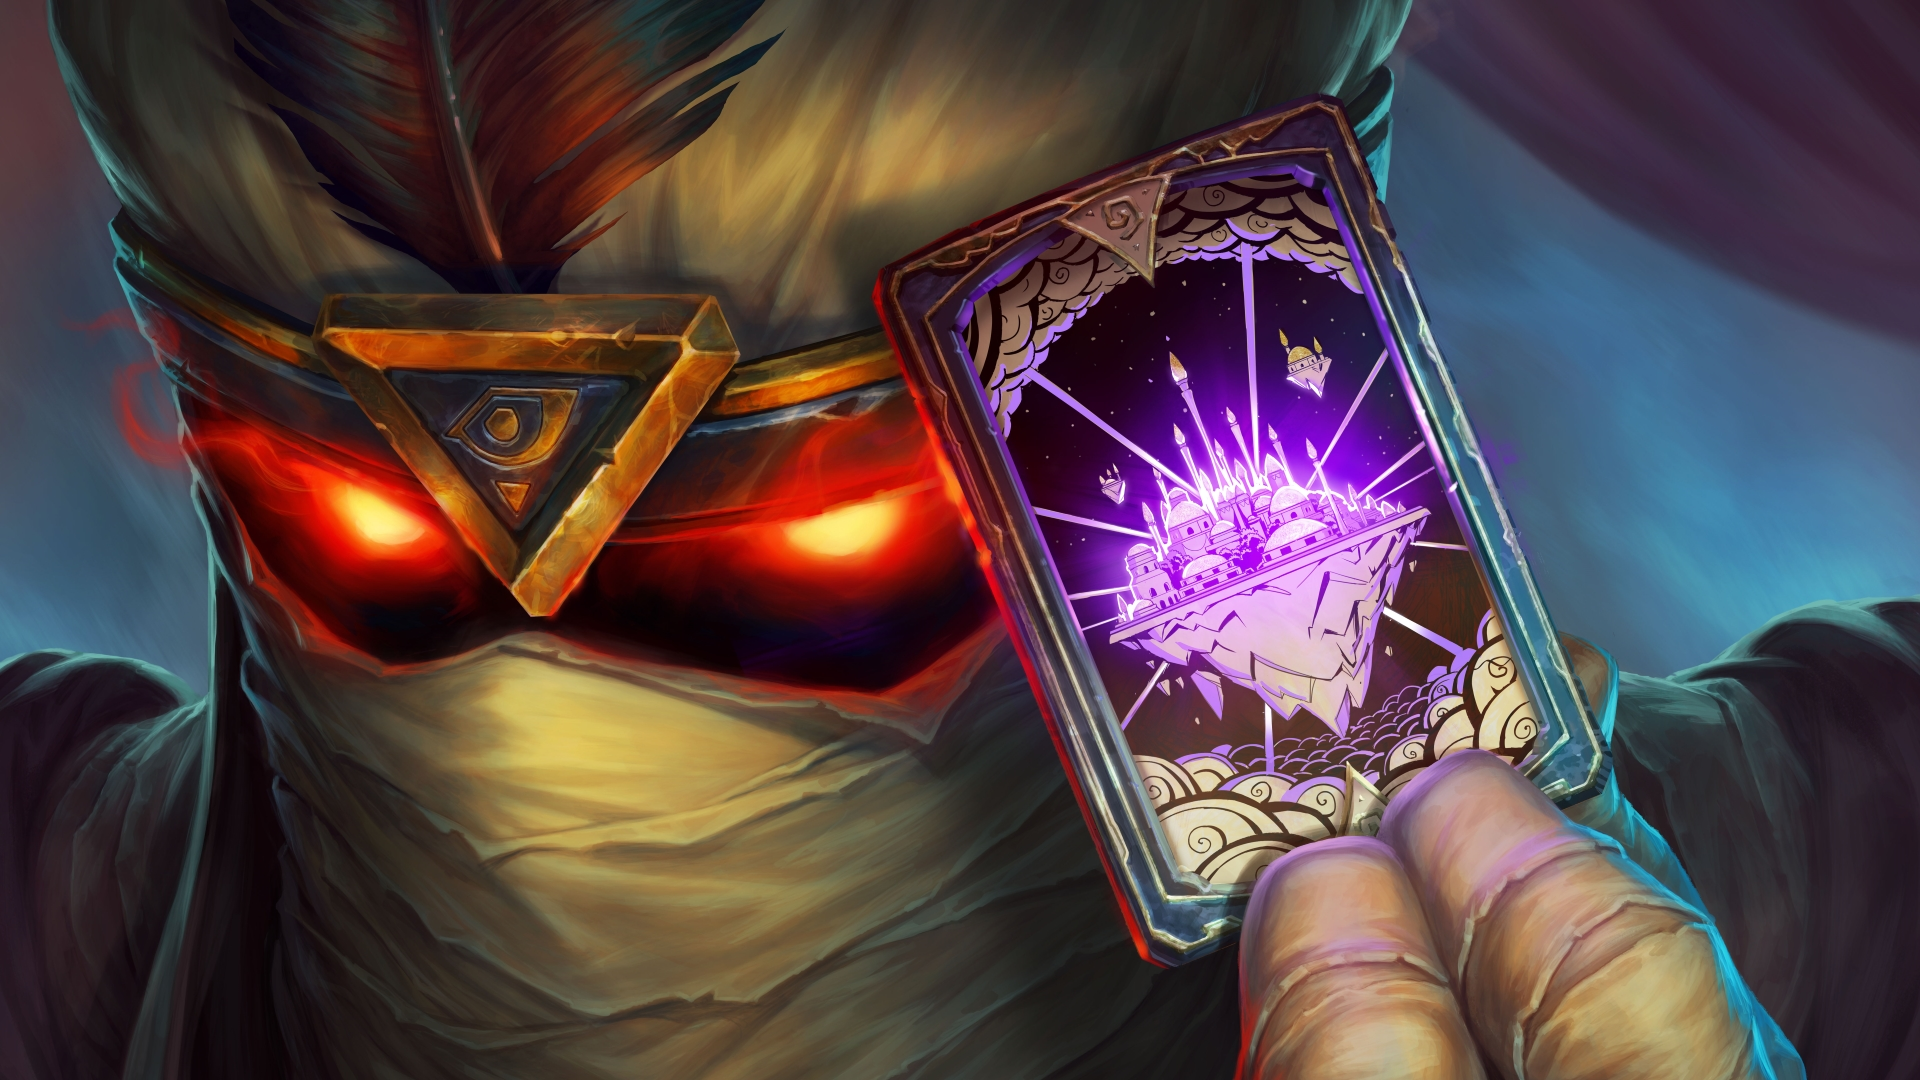 Hearthstone S Rise Of Shadows Expansion Features An Avengers Style